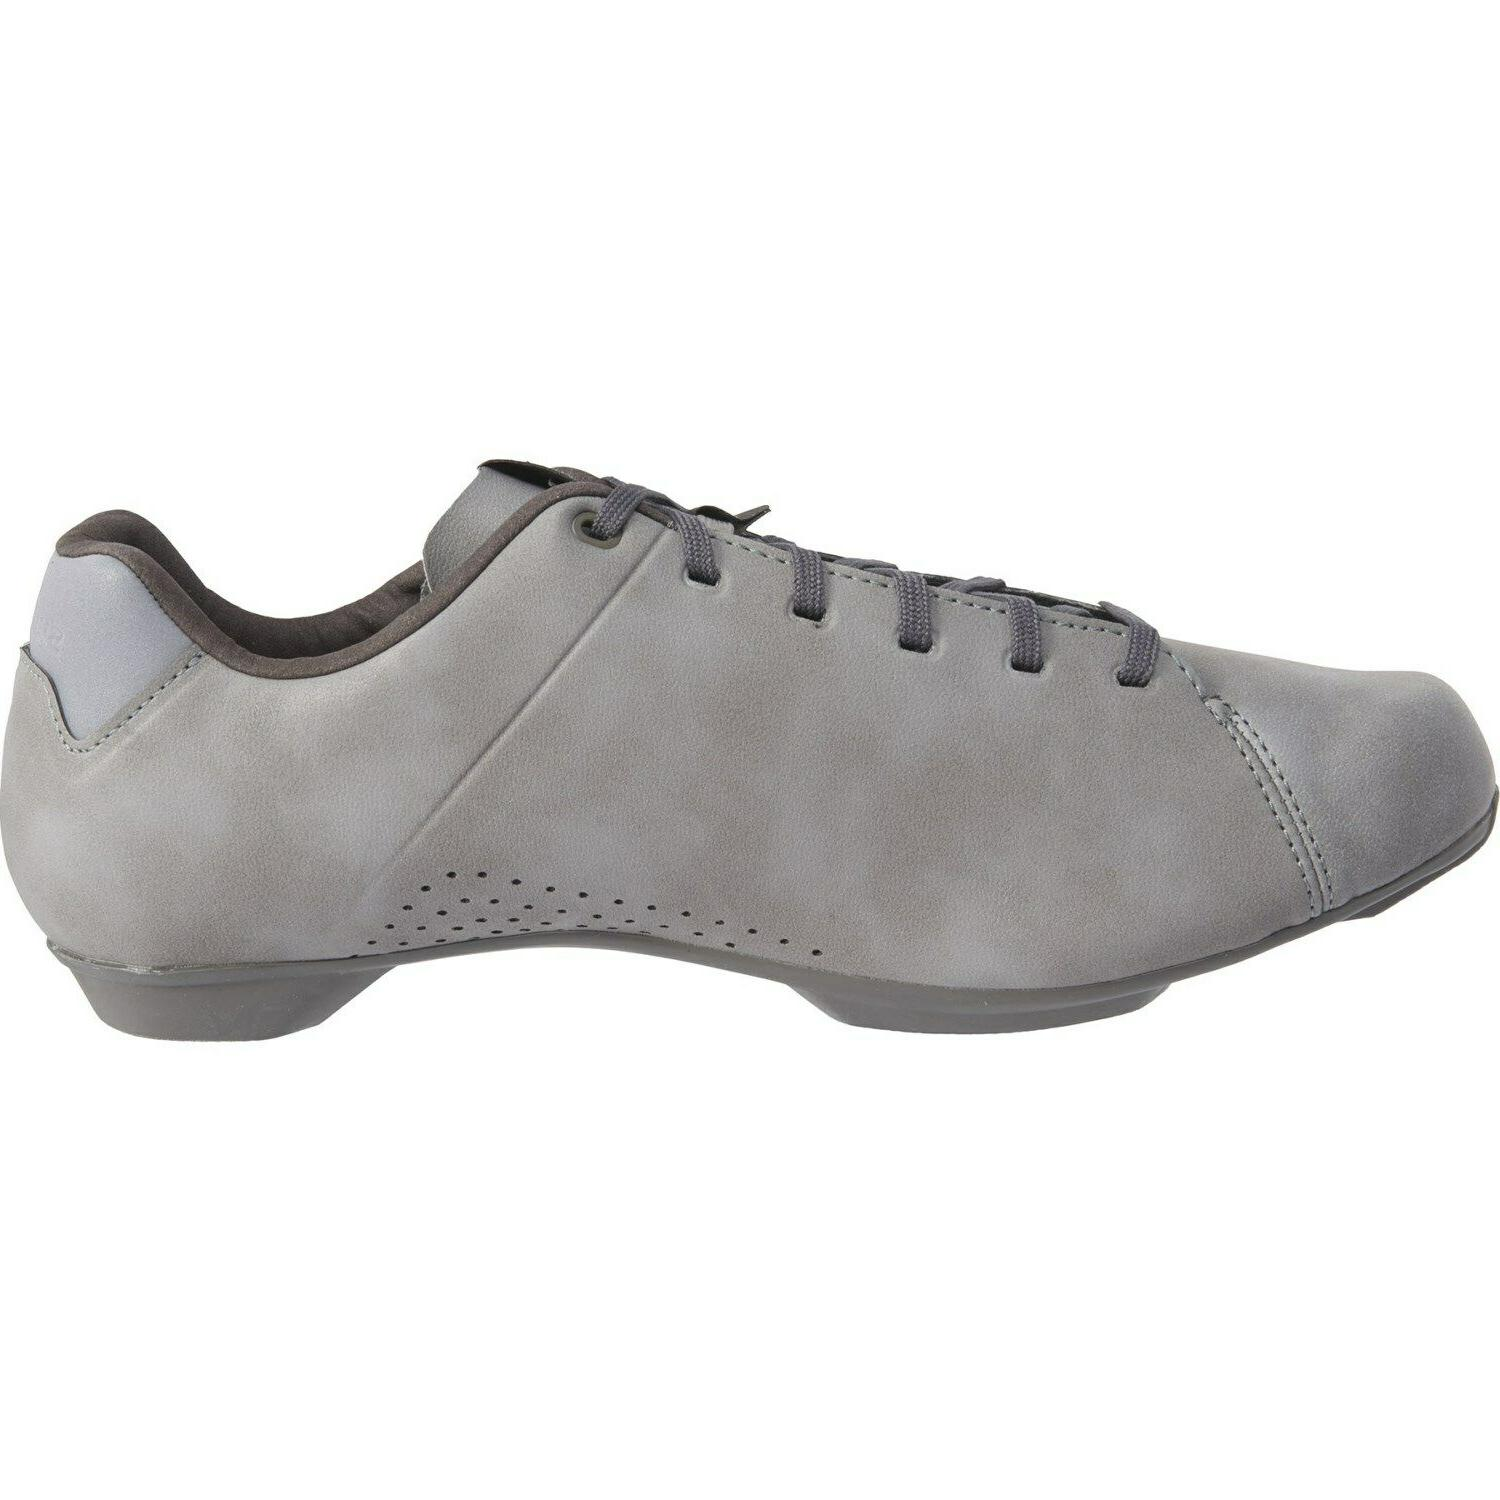 NEW Shimano Bicycle Shoes SPD EUR US 9.5/11